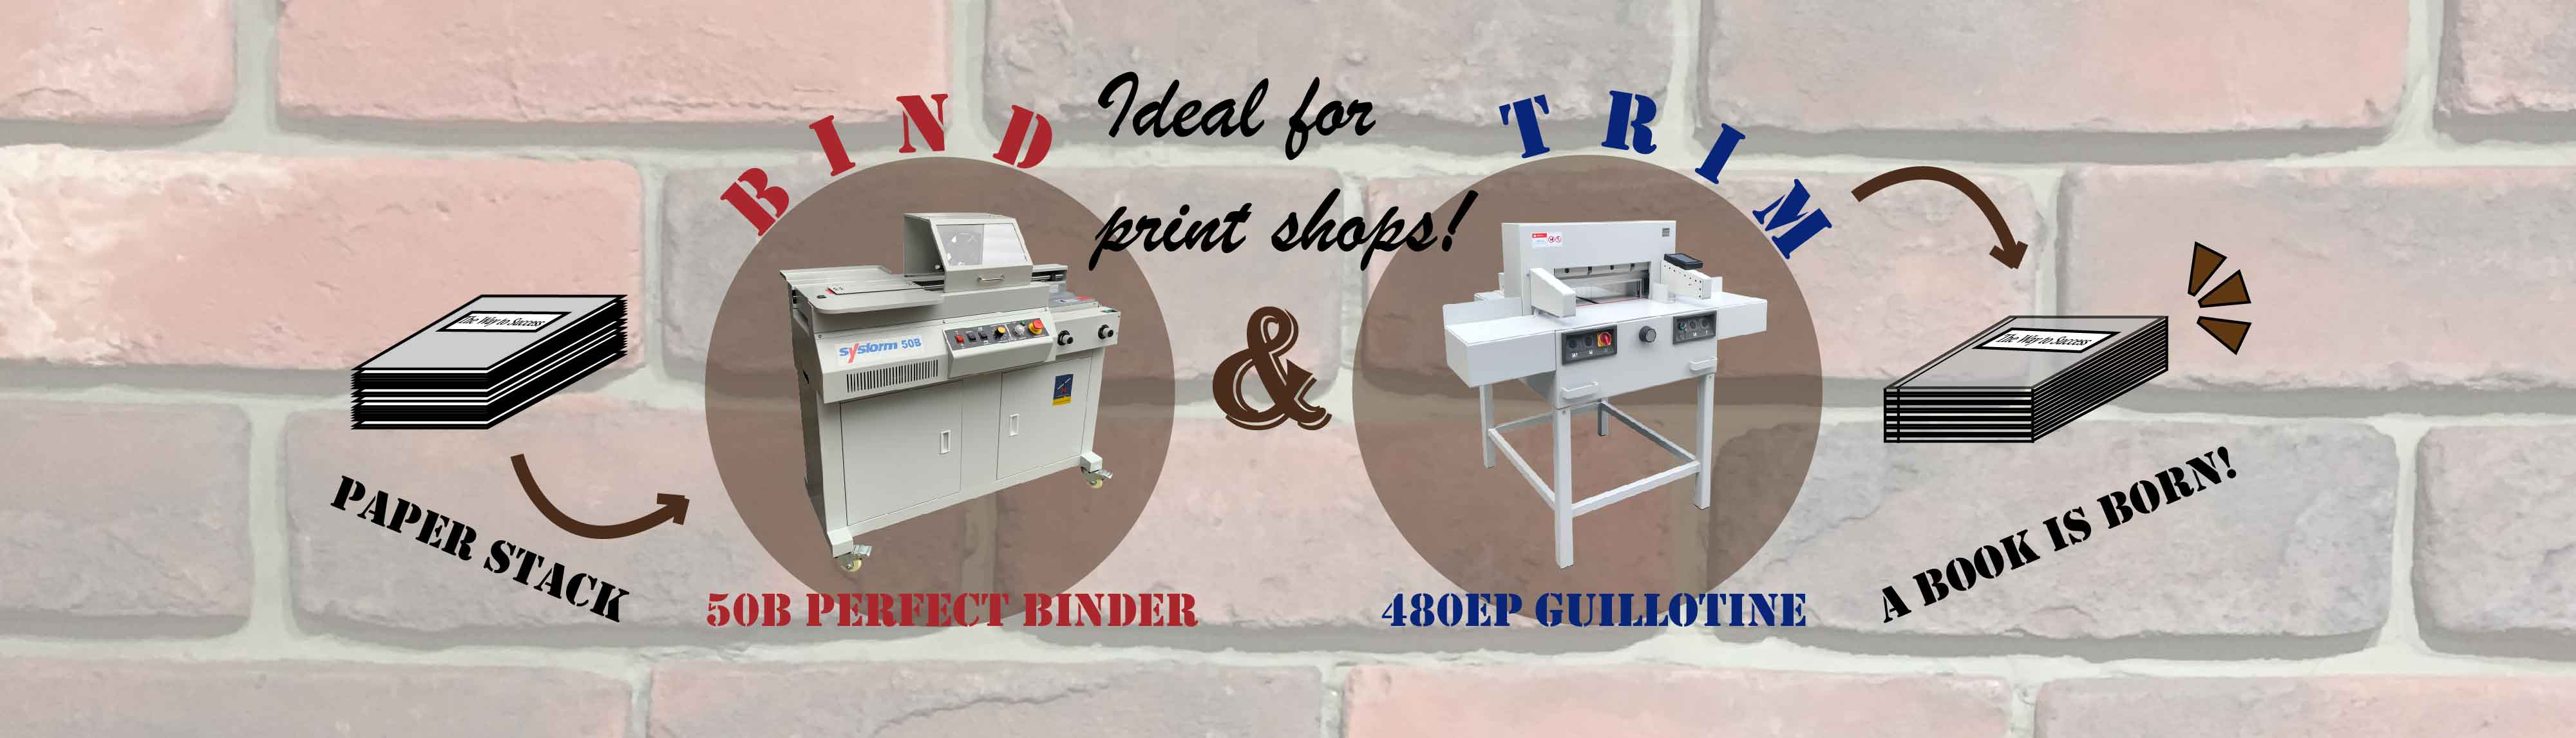 sysform guillotine and perfect binder for print shops